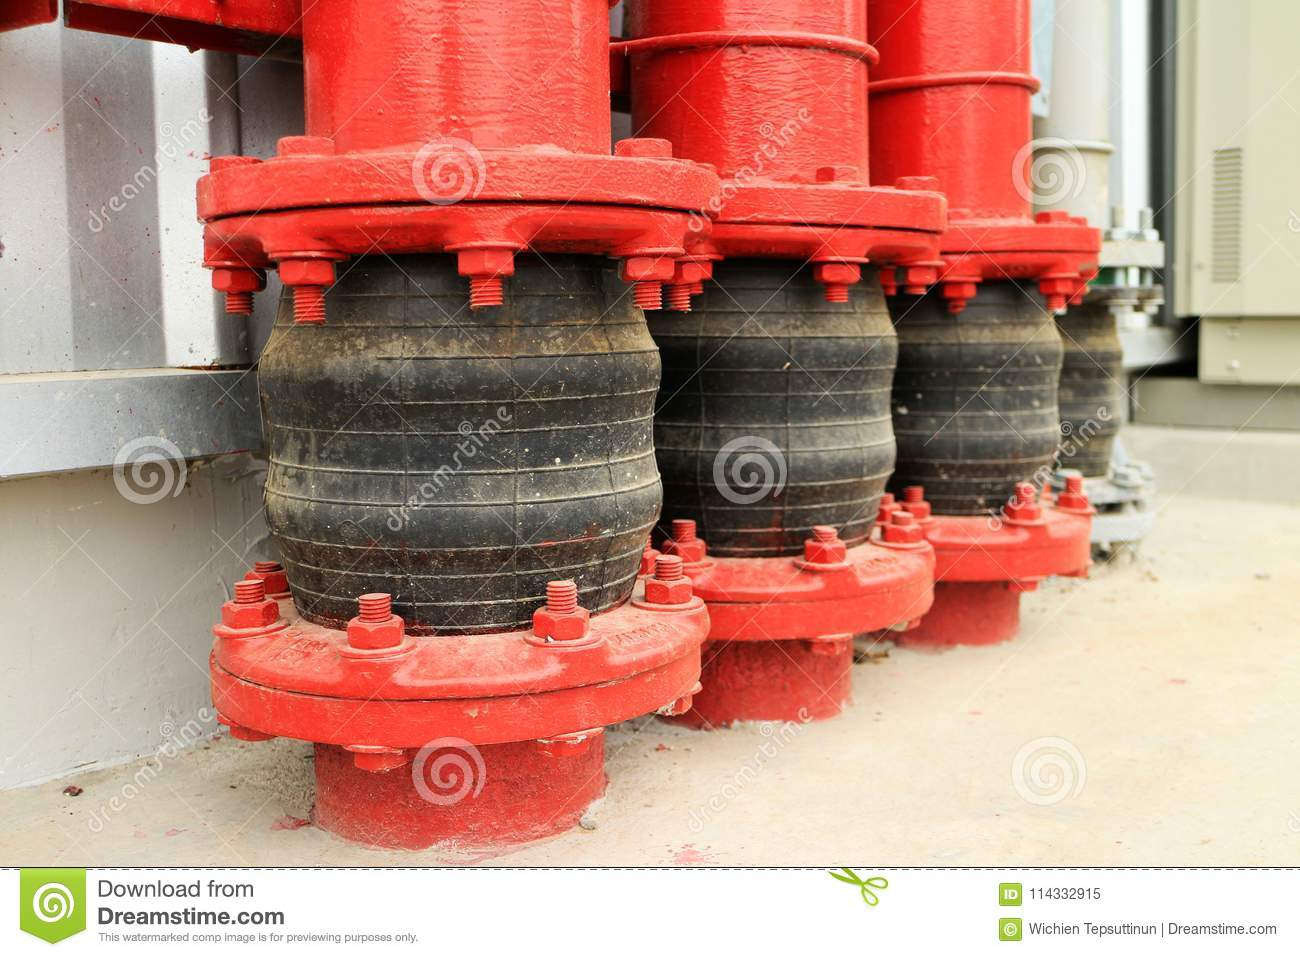 Pipe Vibration Isolator of the Fire Water Pipe at Ground Entry providing flexibility to the piping when the pipe vibrate and ground settle. & Pipe Vibration Isolator At Ground Entry Stock Image - Image of ...